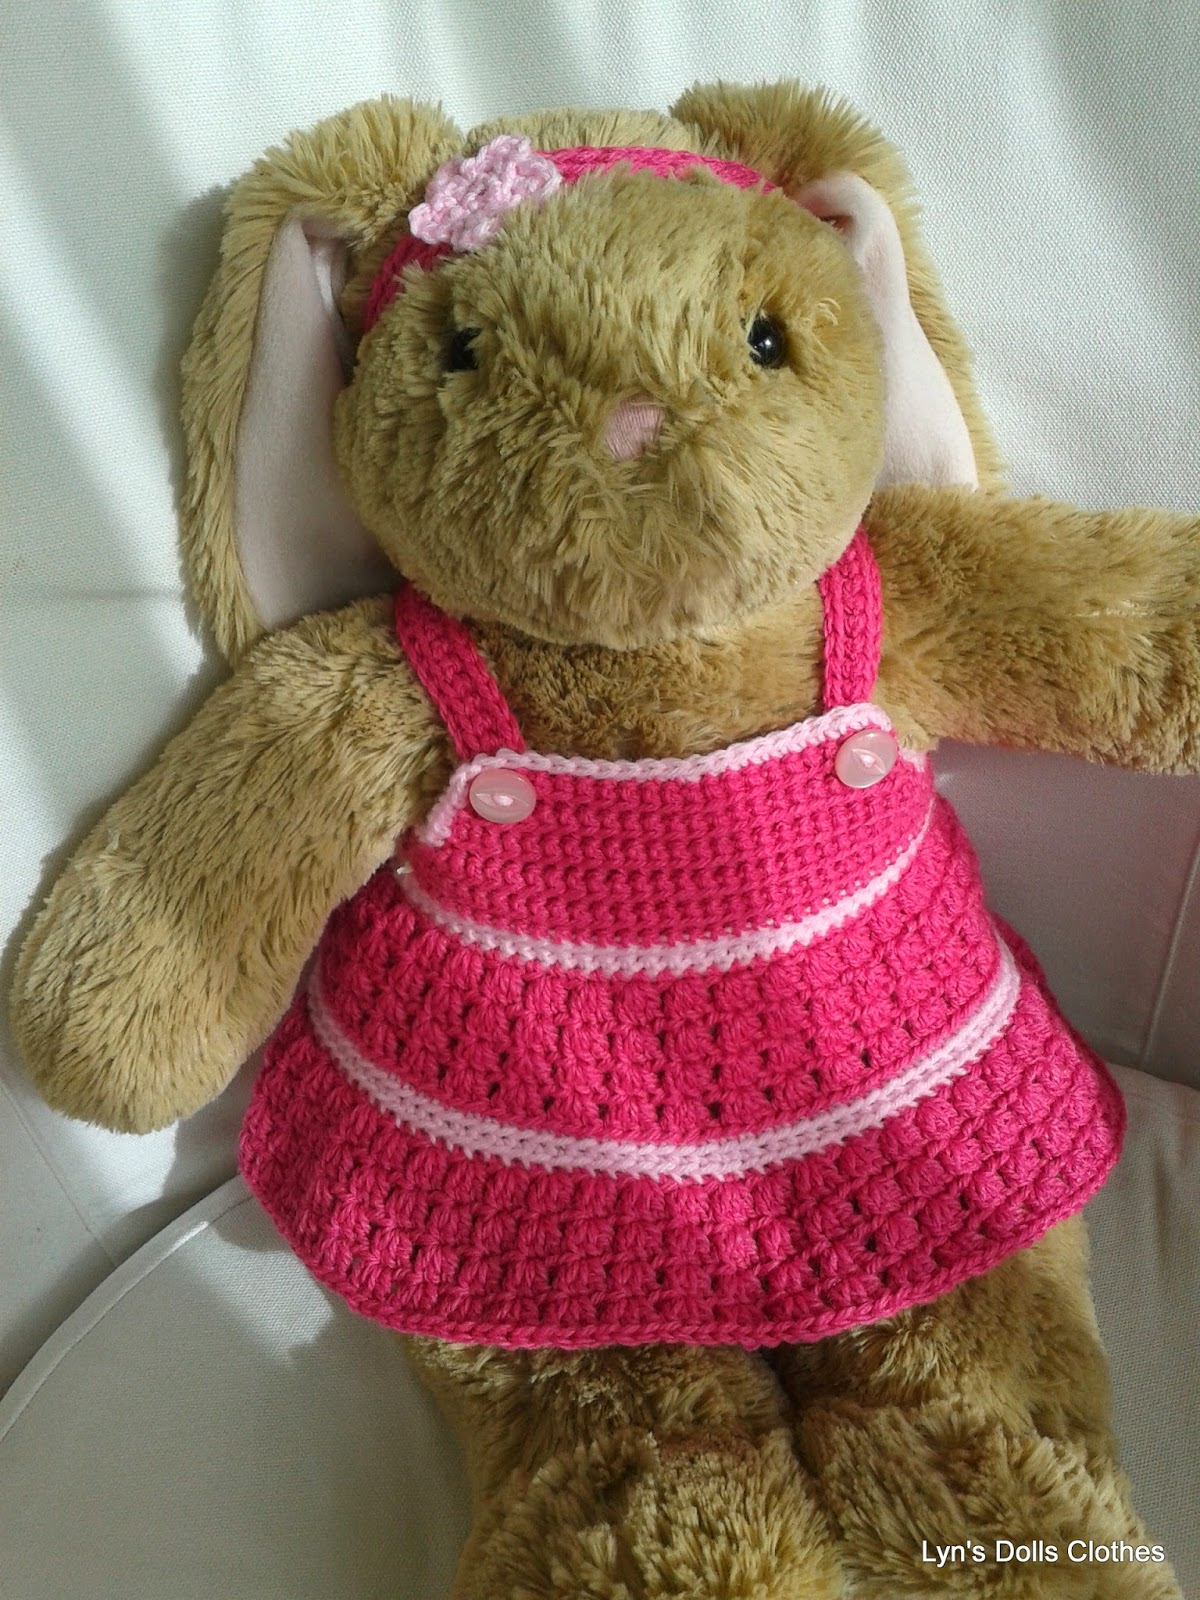 Lyns Dolls Clothes: Teddy bear crochet dress and headband